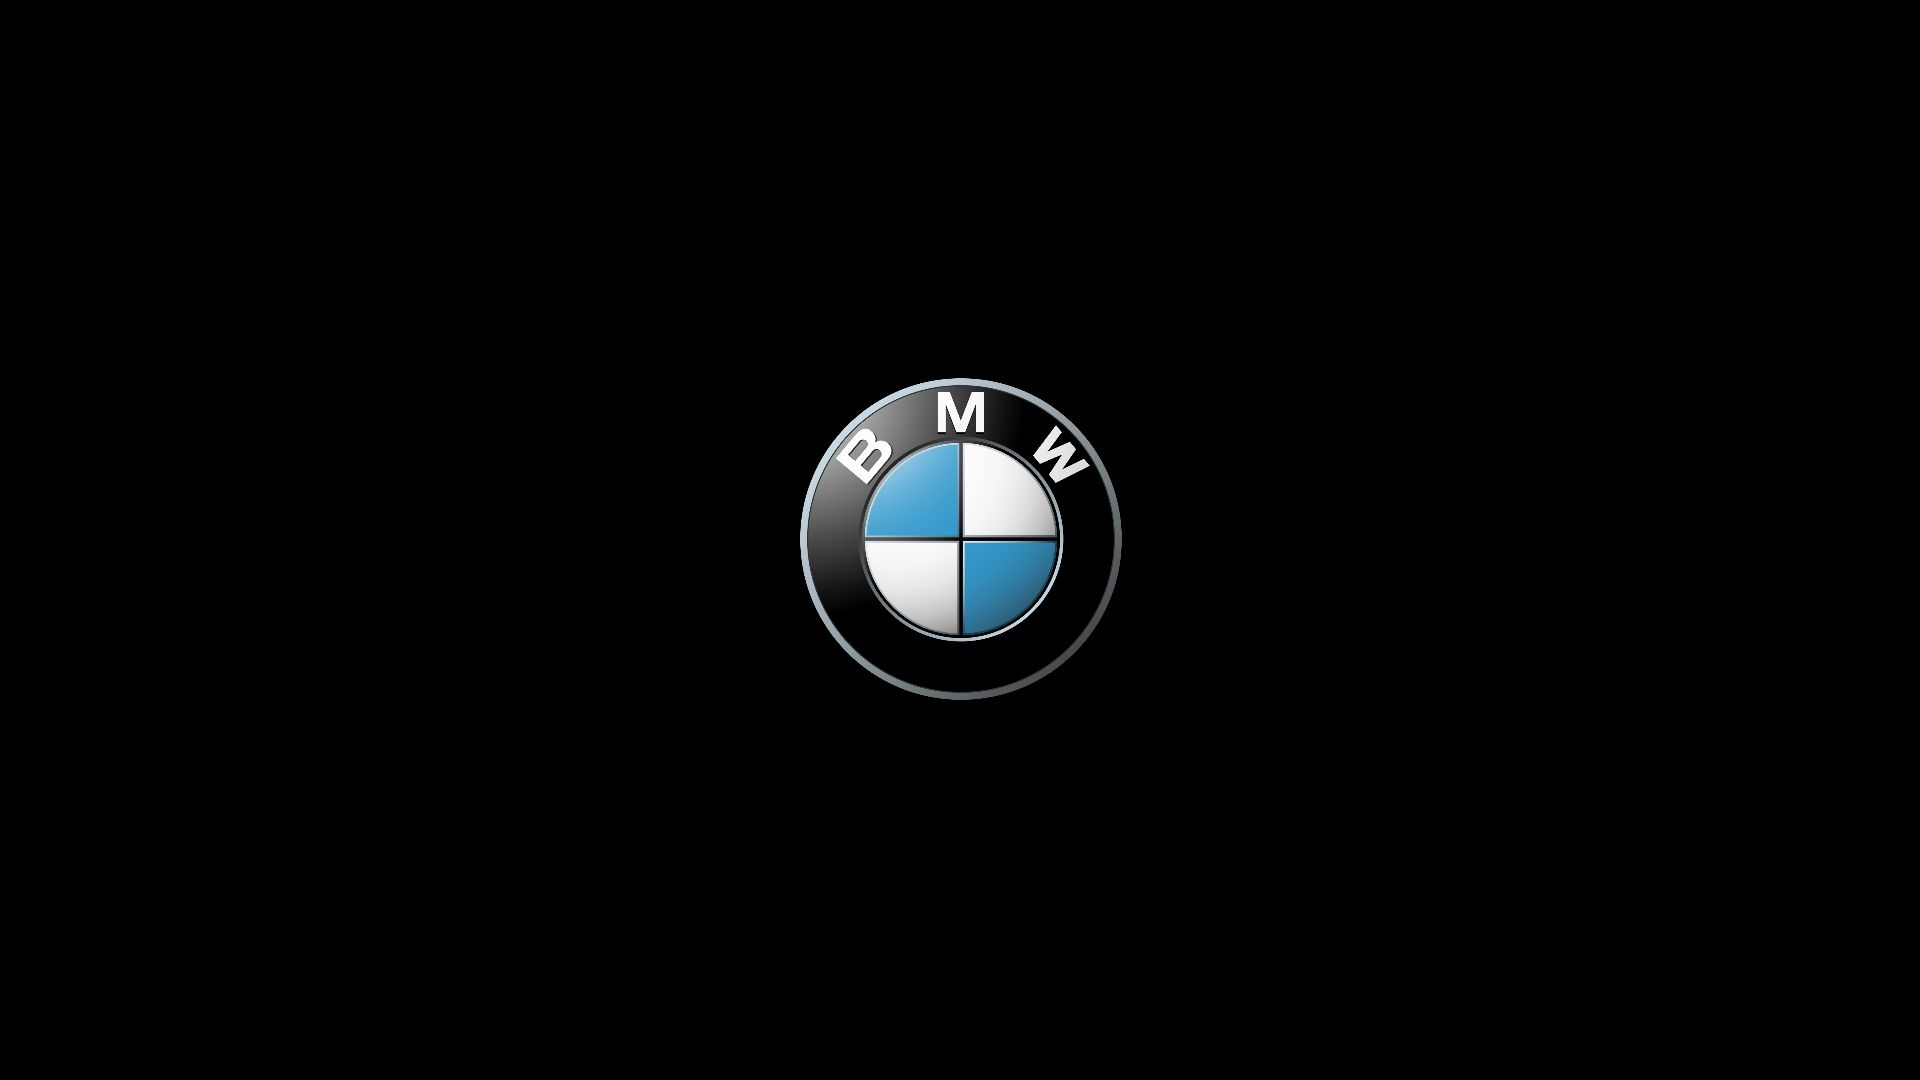 Best Bmw Wallpapers For Desktop Tablets In Hd For Download 1476